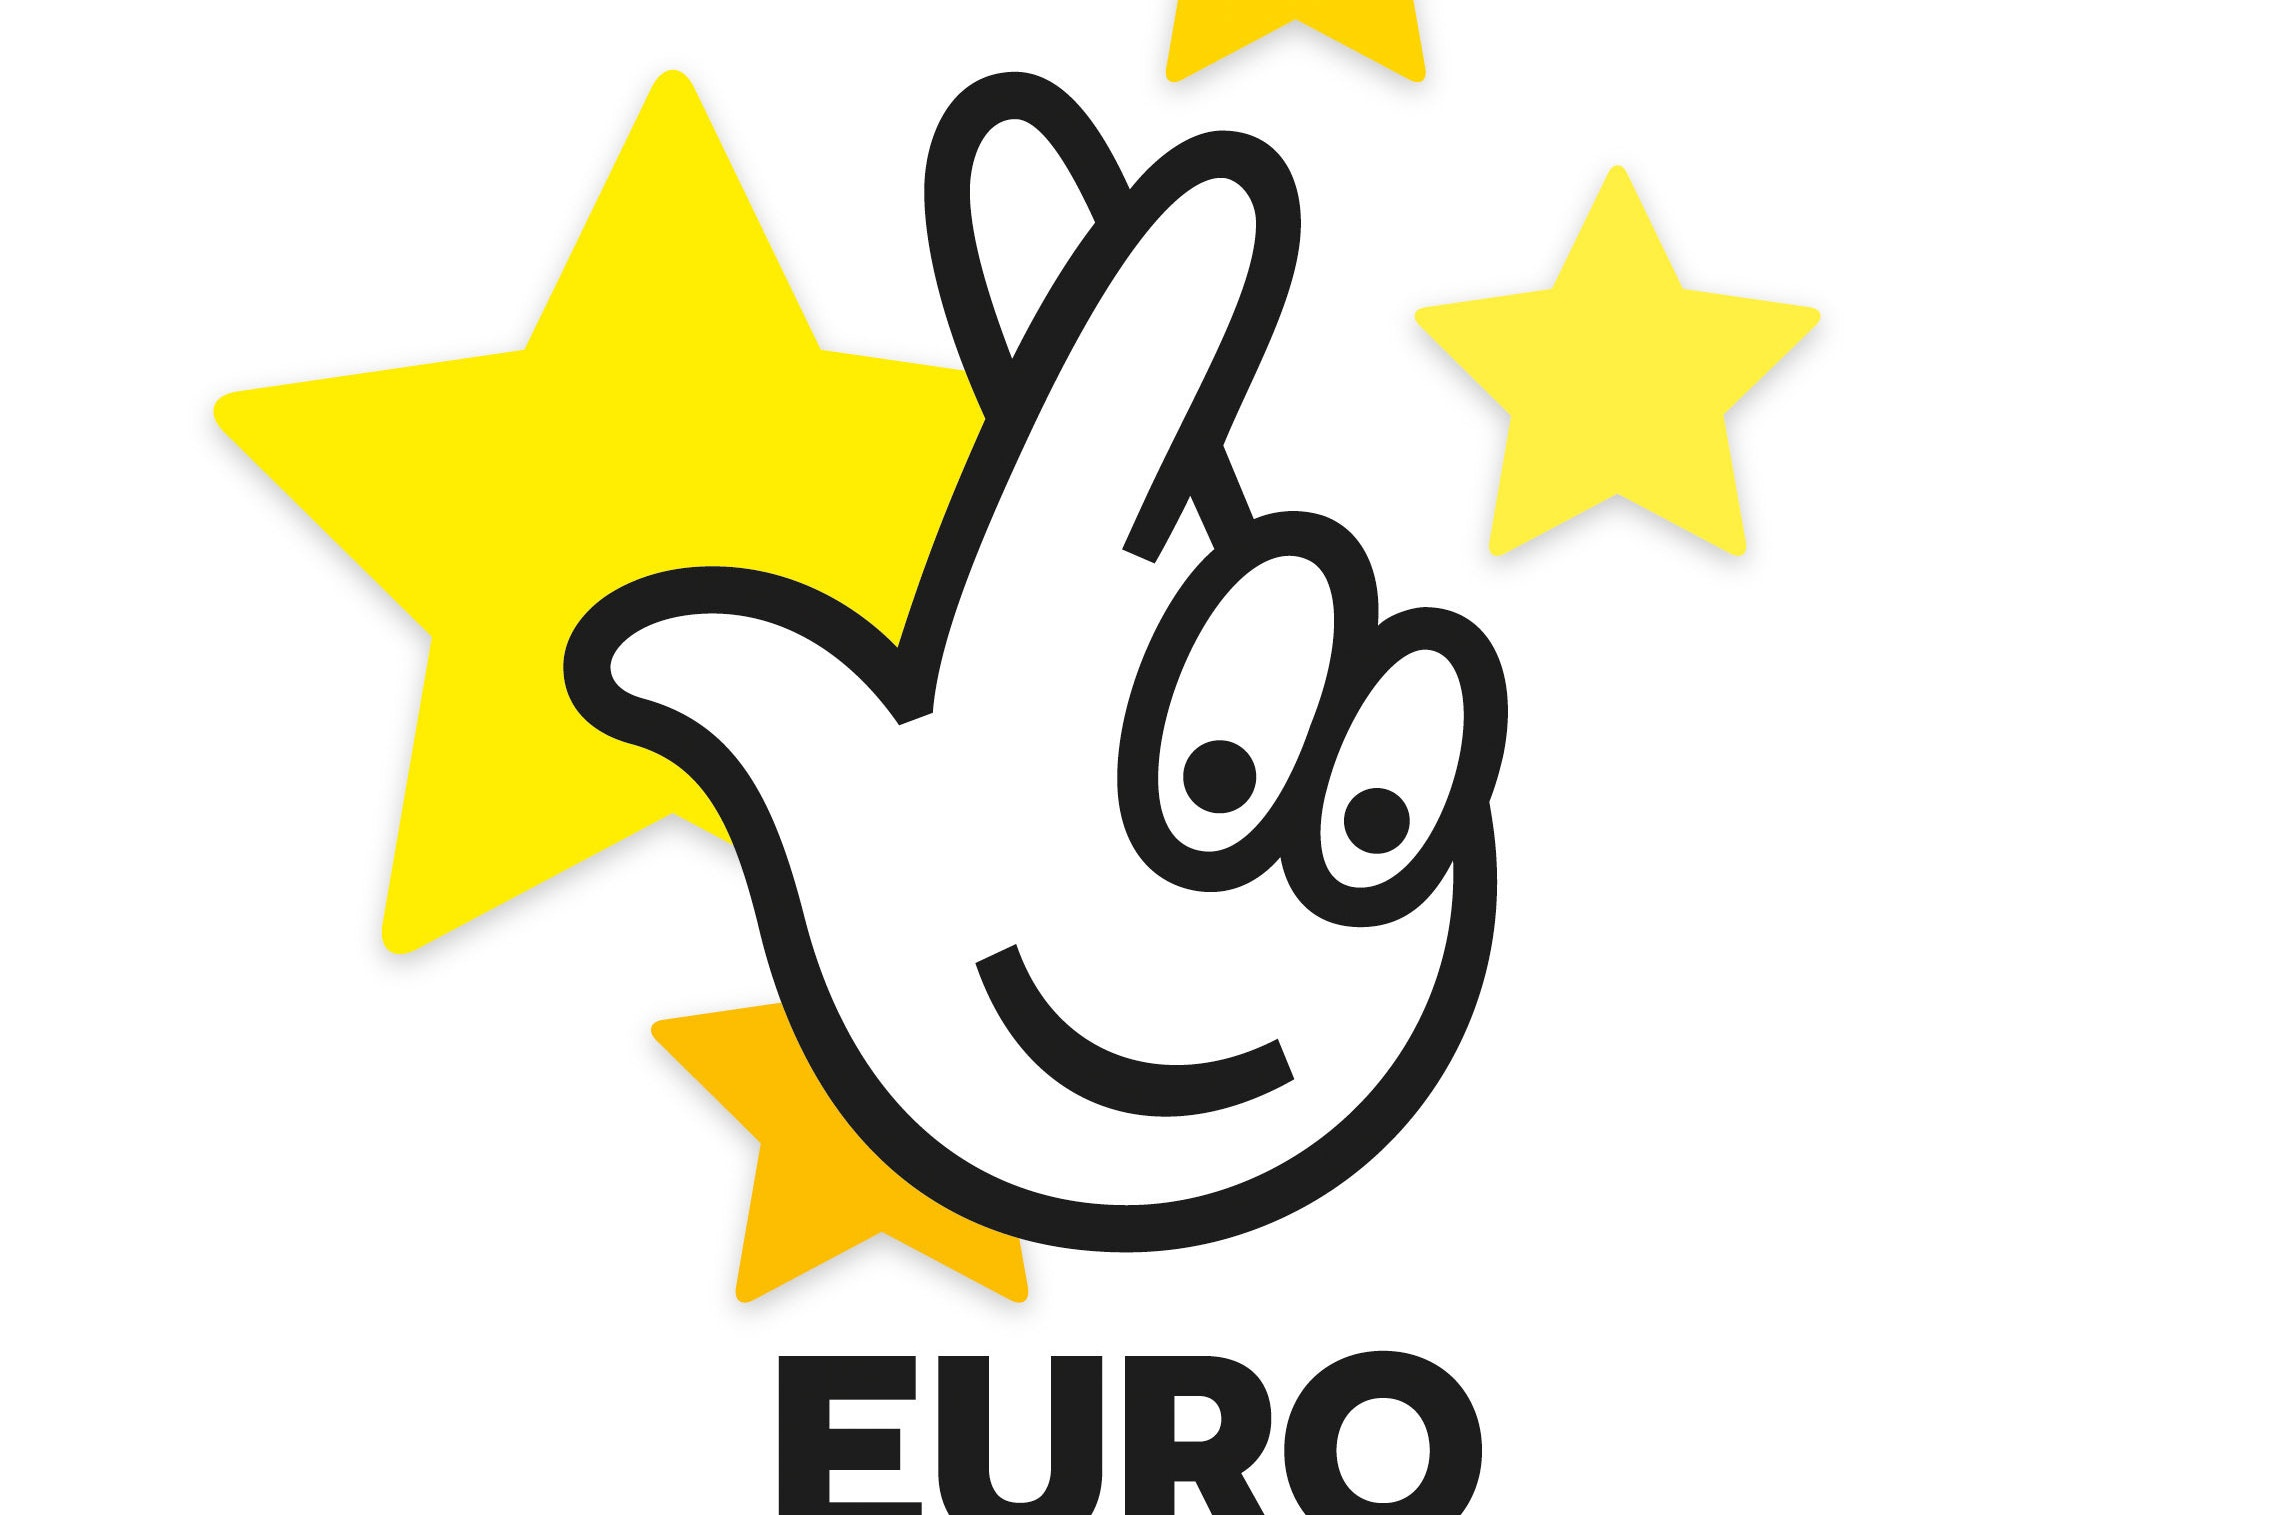 Winner of £76m EuroMillions jackpot to go public